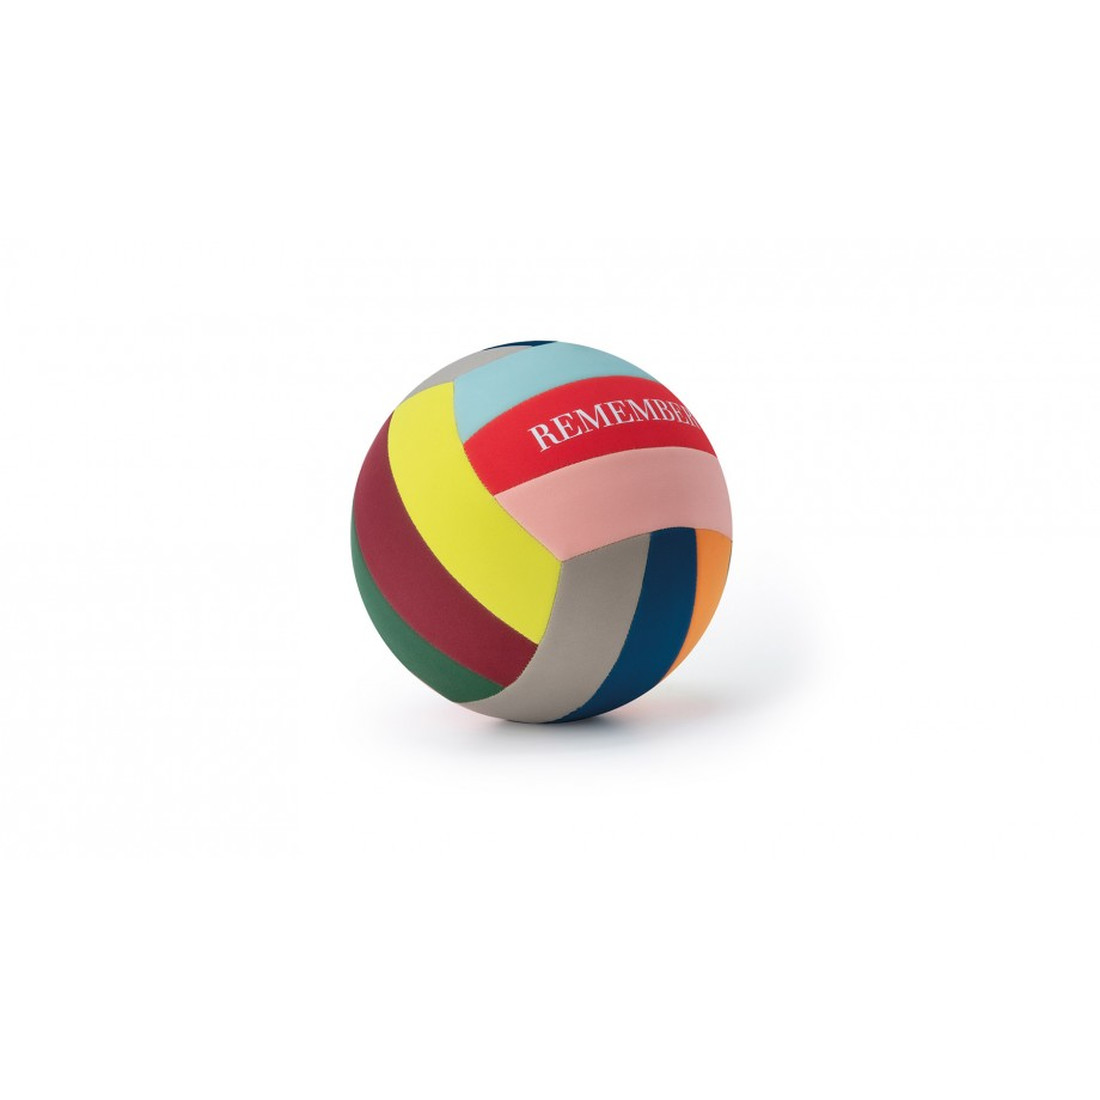 Freizeitball by REMEMBER